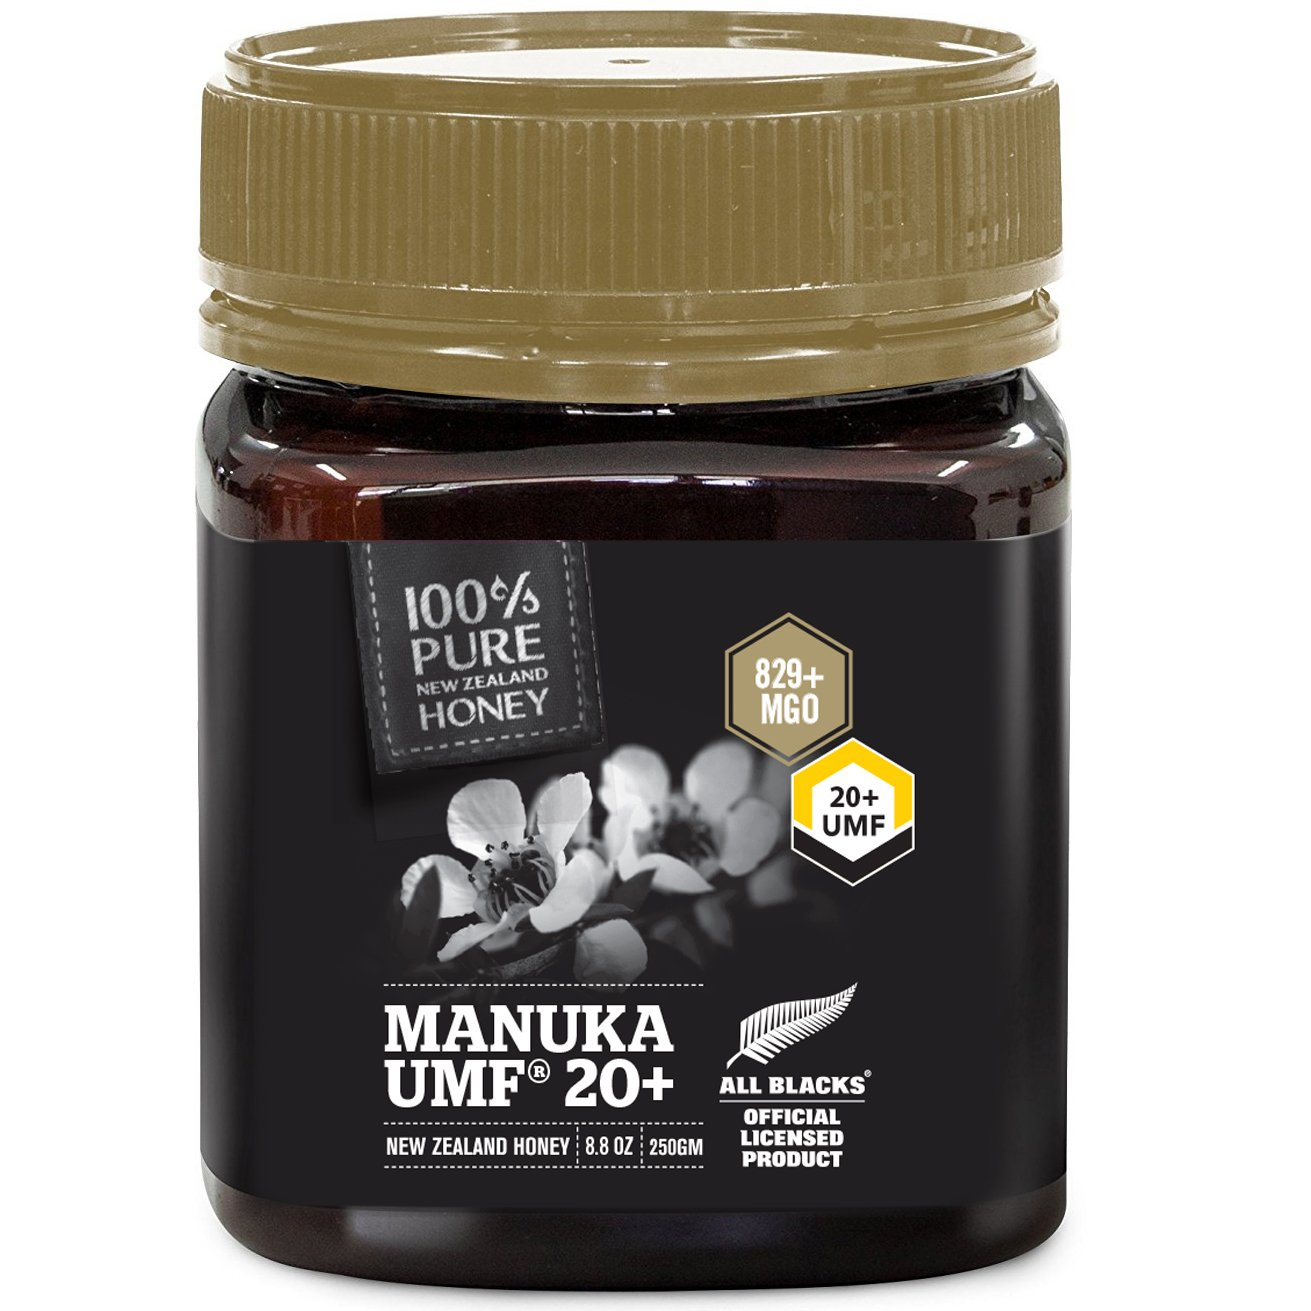 Pure New Zealand Manuka Honey - UMF 20+ Certified - 8.8 oz- All Blacks Official Licensed Honey